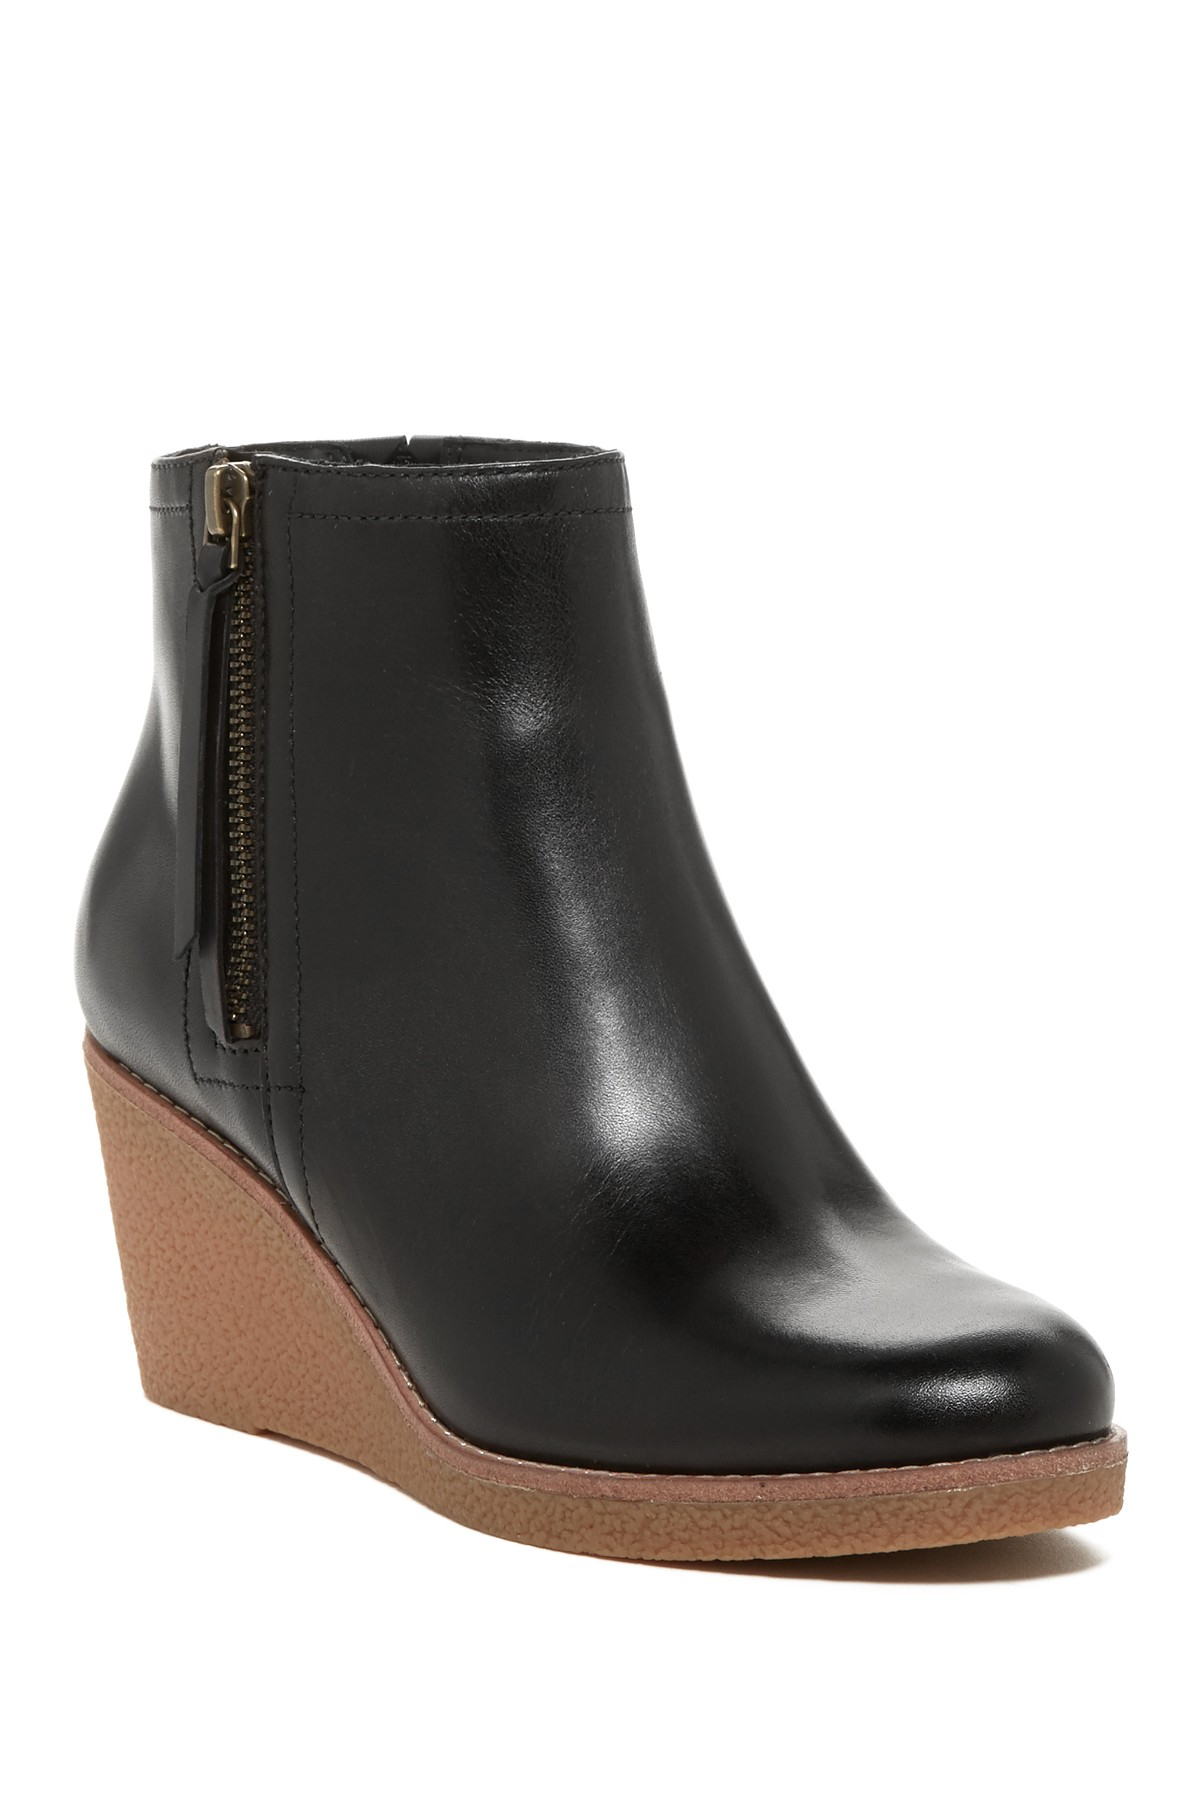 Lyst Cole Haan Auden Leather Wedge Boots In Black